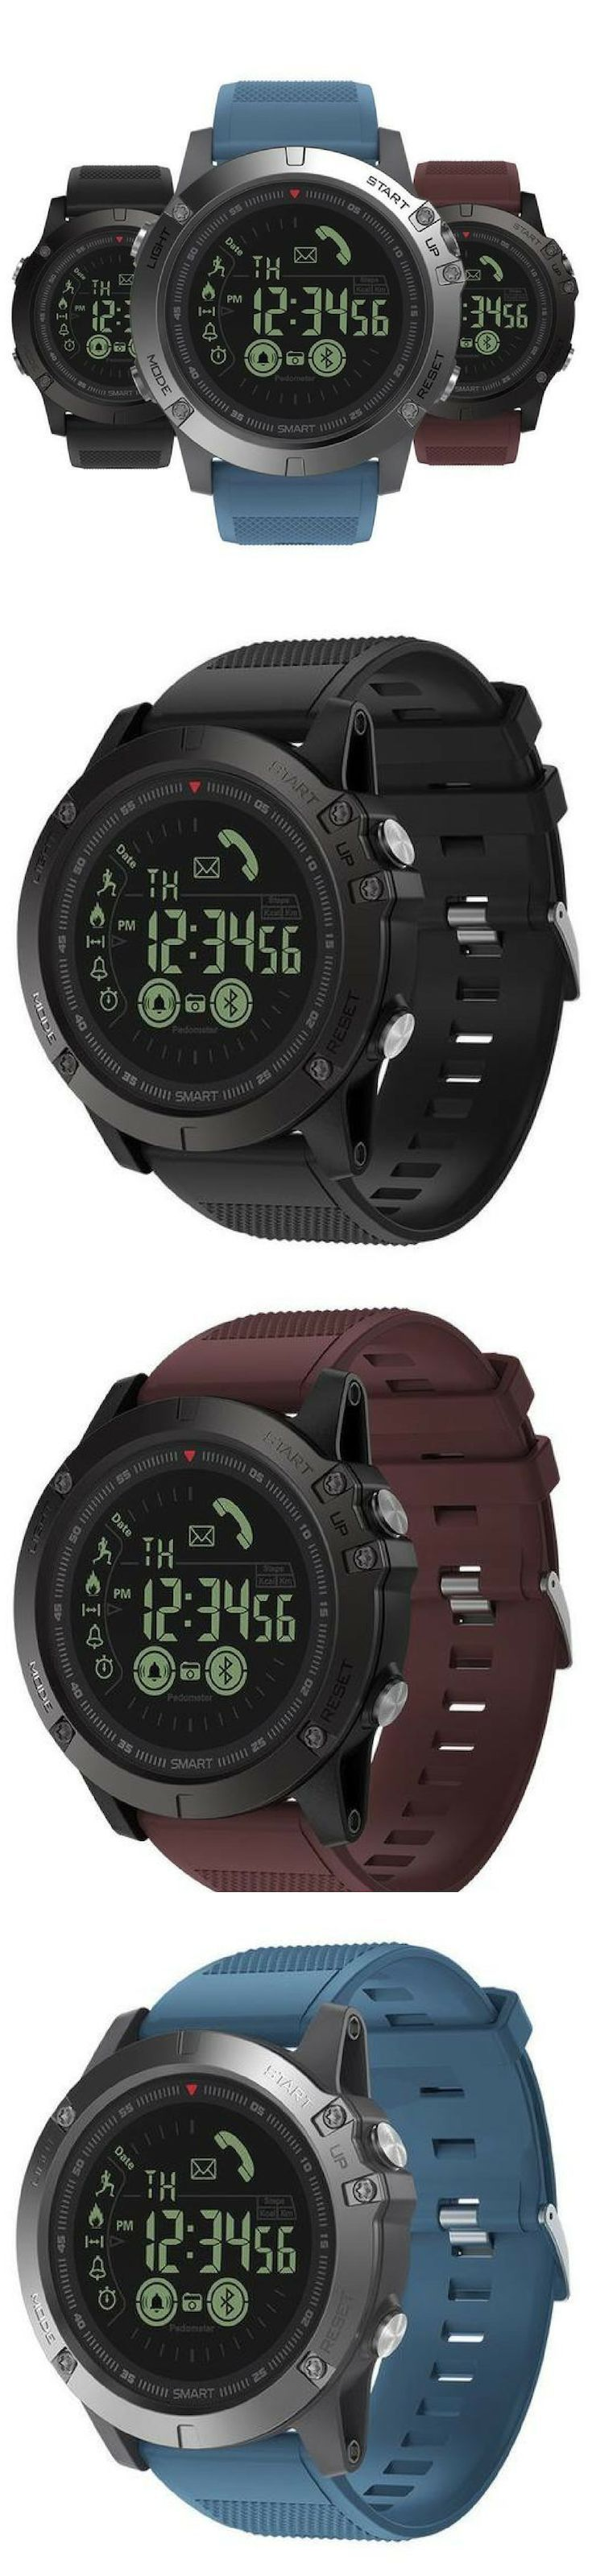 Tactical Smartwatch V3 Ios Android Compatible Made Out Of Stainless Steel This Watch Will Survive Anything Tactical Watch Camping Accessories Outdoor Watch